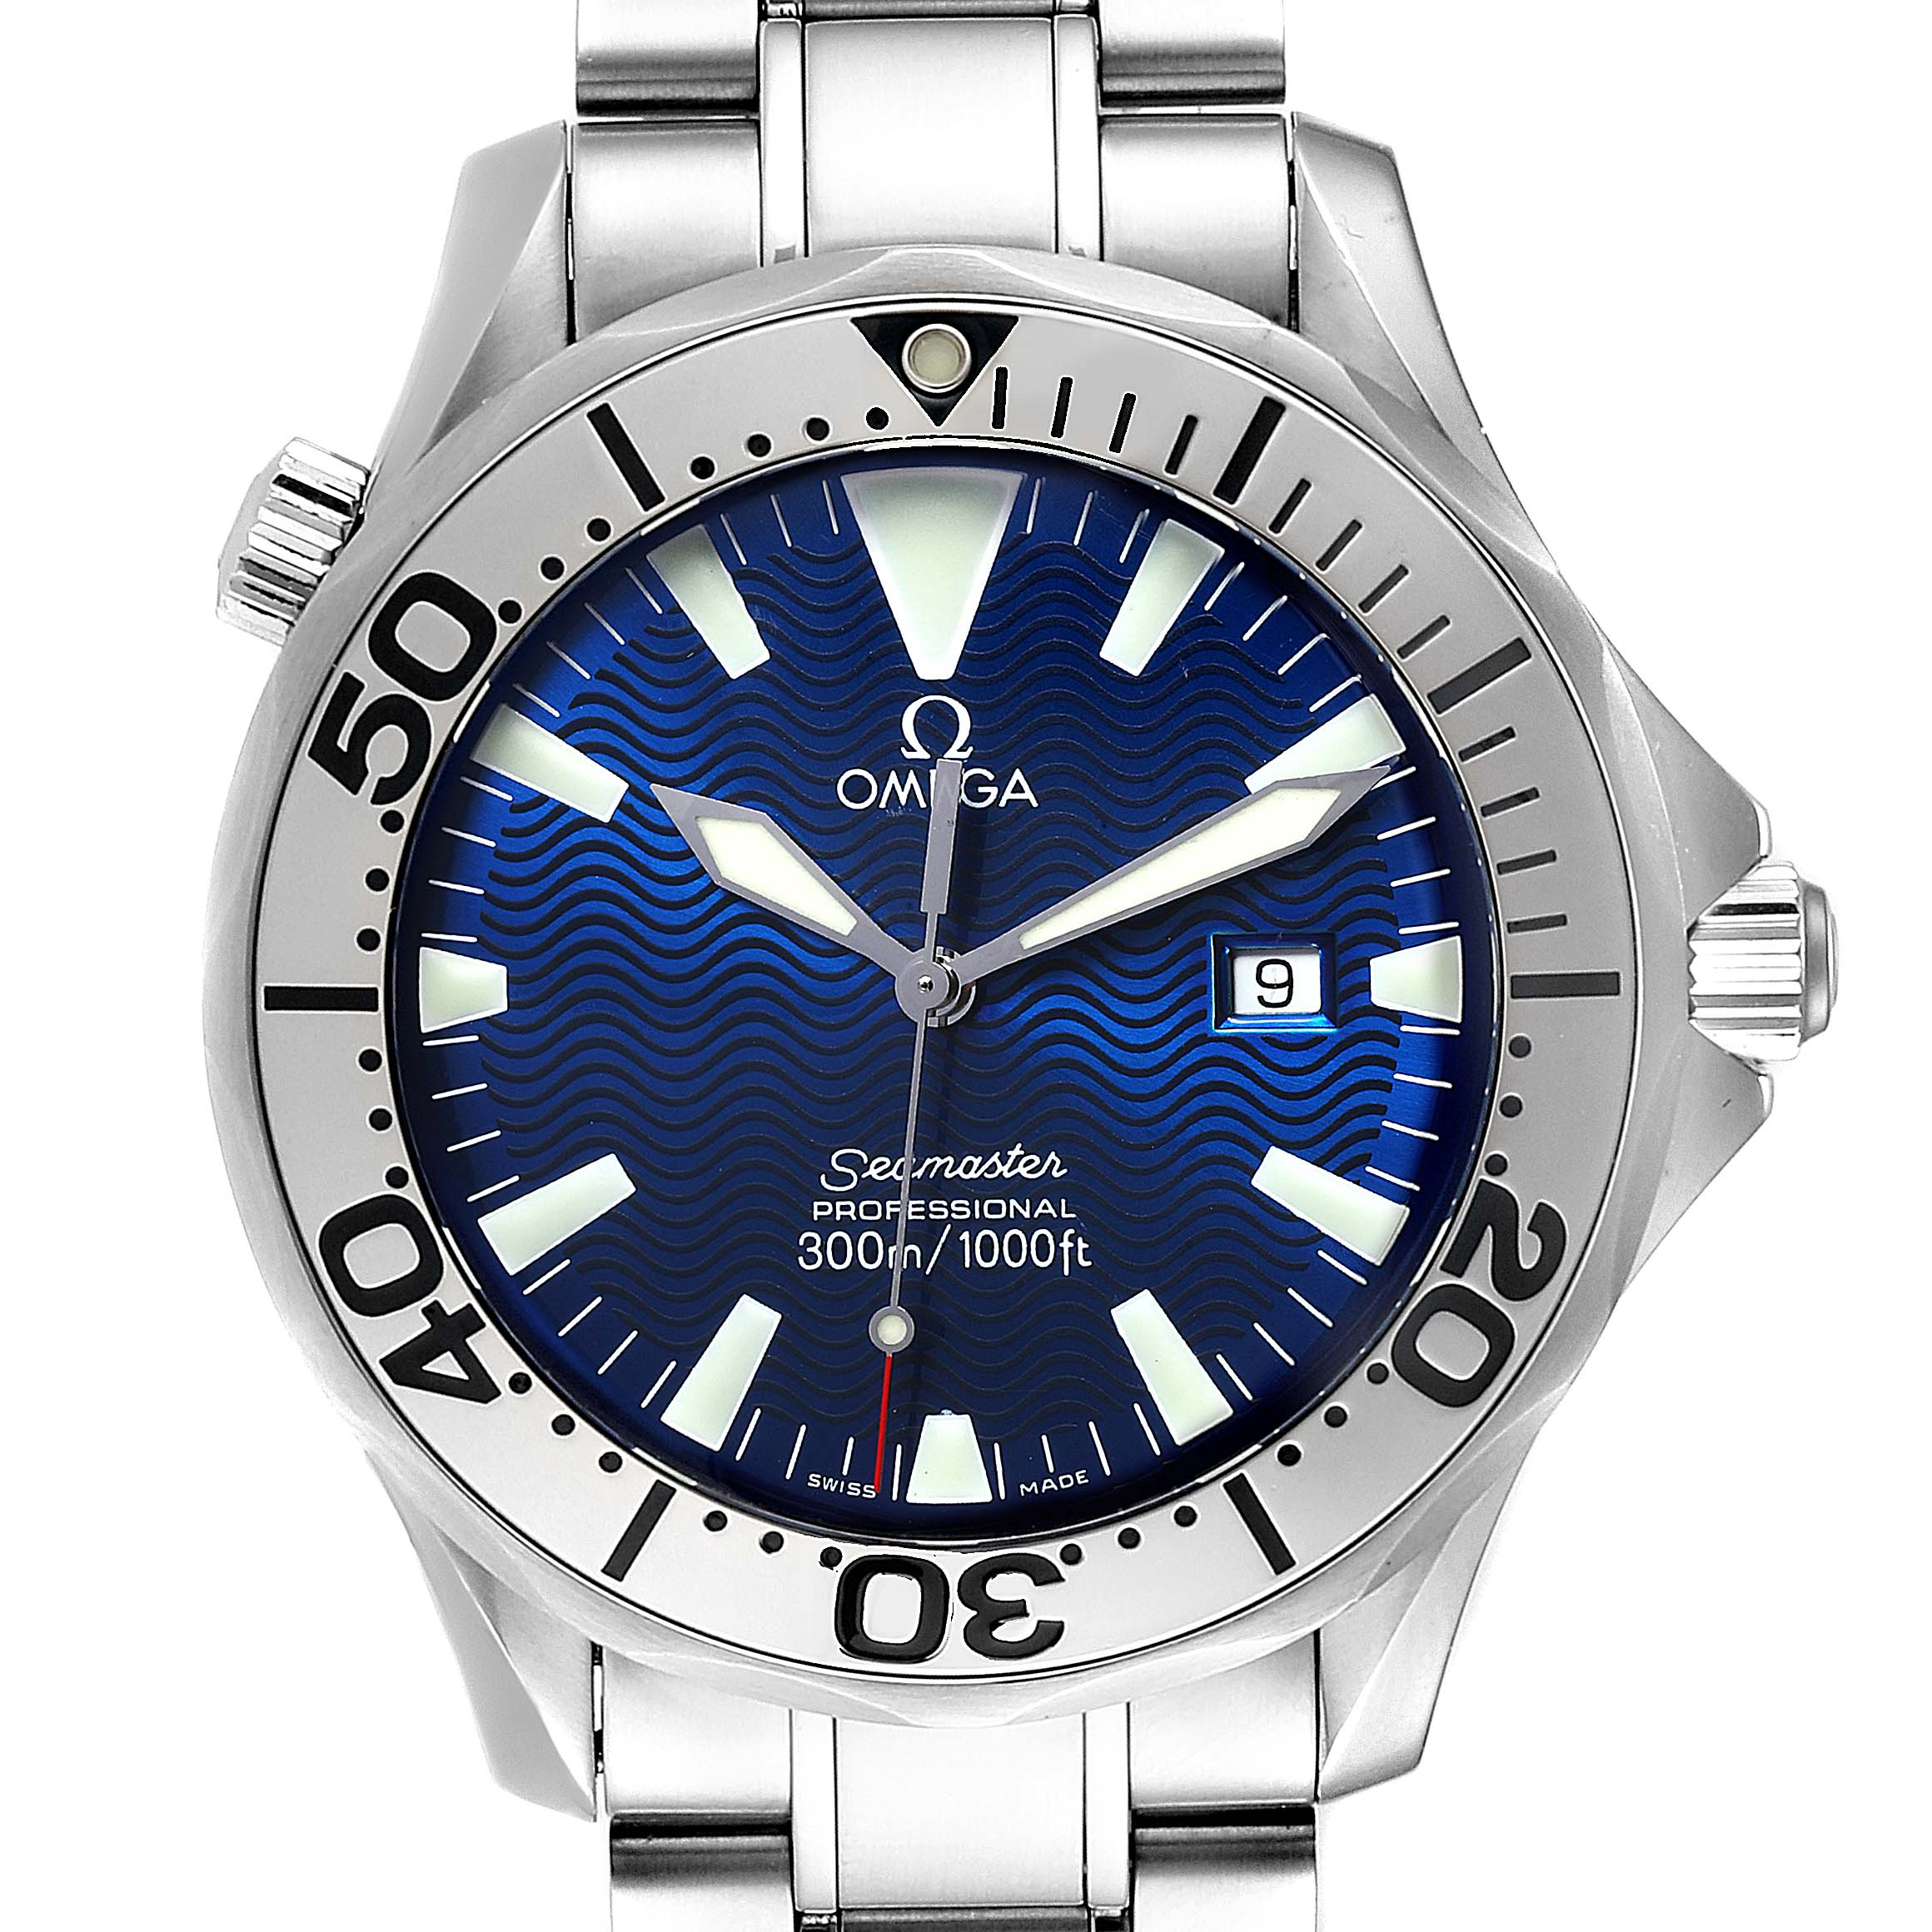 Omega Seamaster Electric Blue Wave Dial Mens Watch 2265.80.00 Card